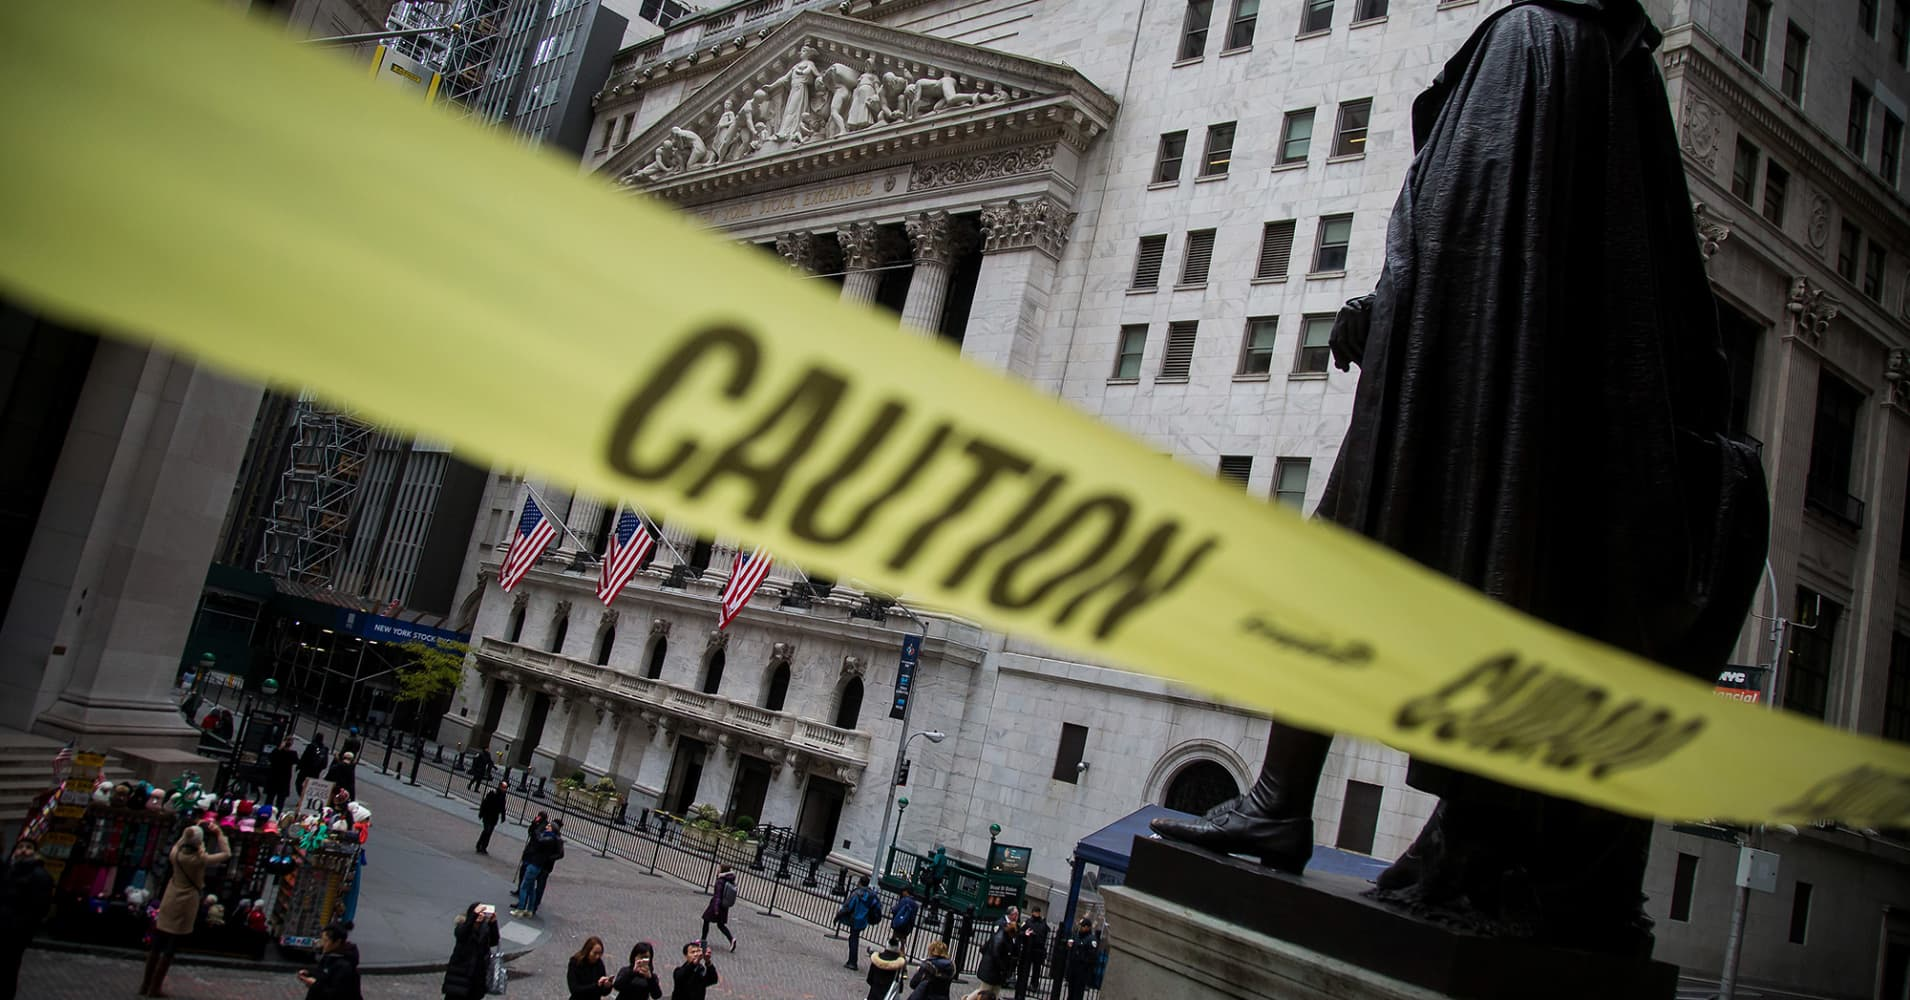 The S&P 500 and Dow are back in a correction. Here's what experts are watching for next week